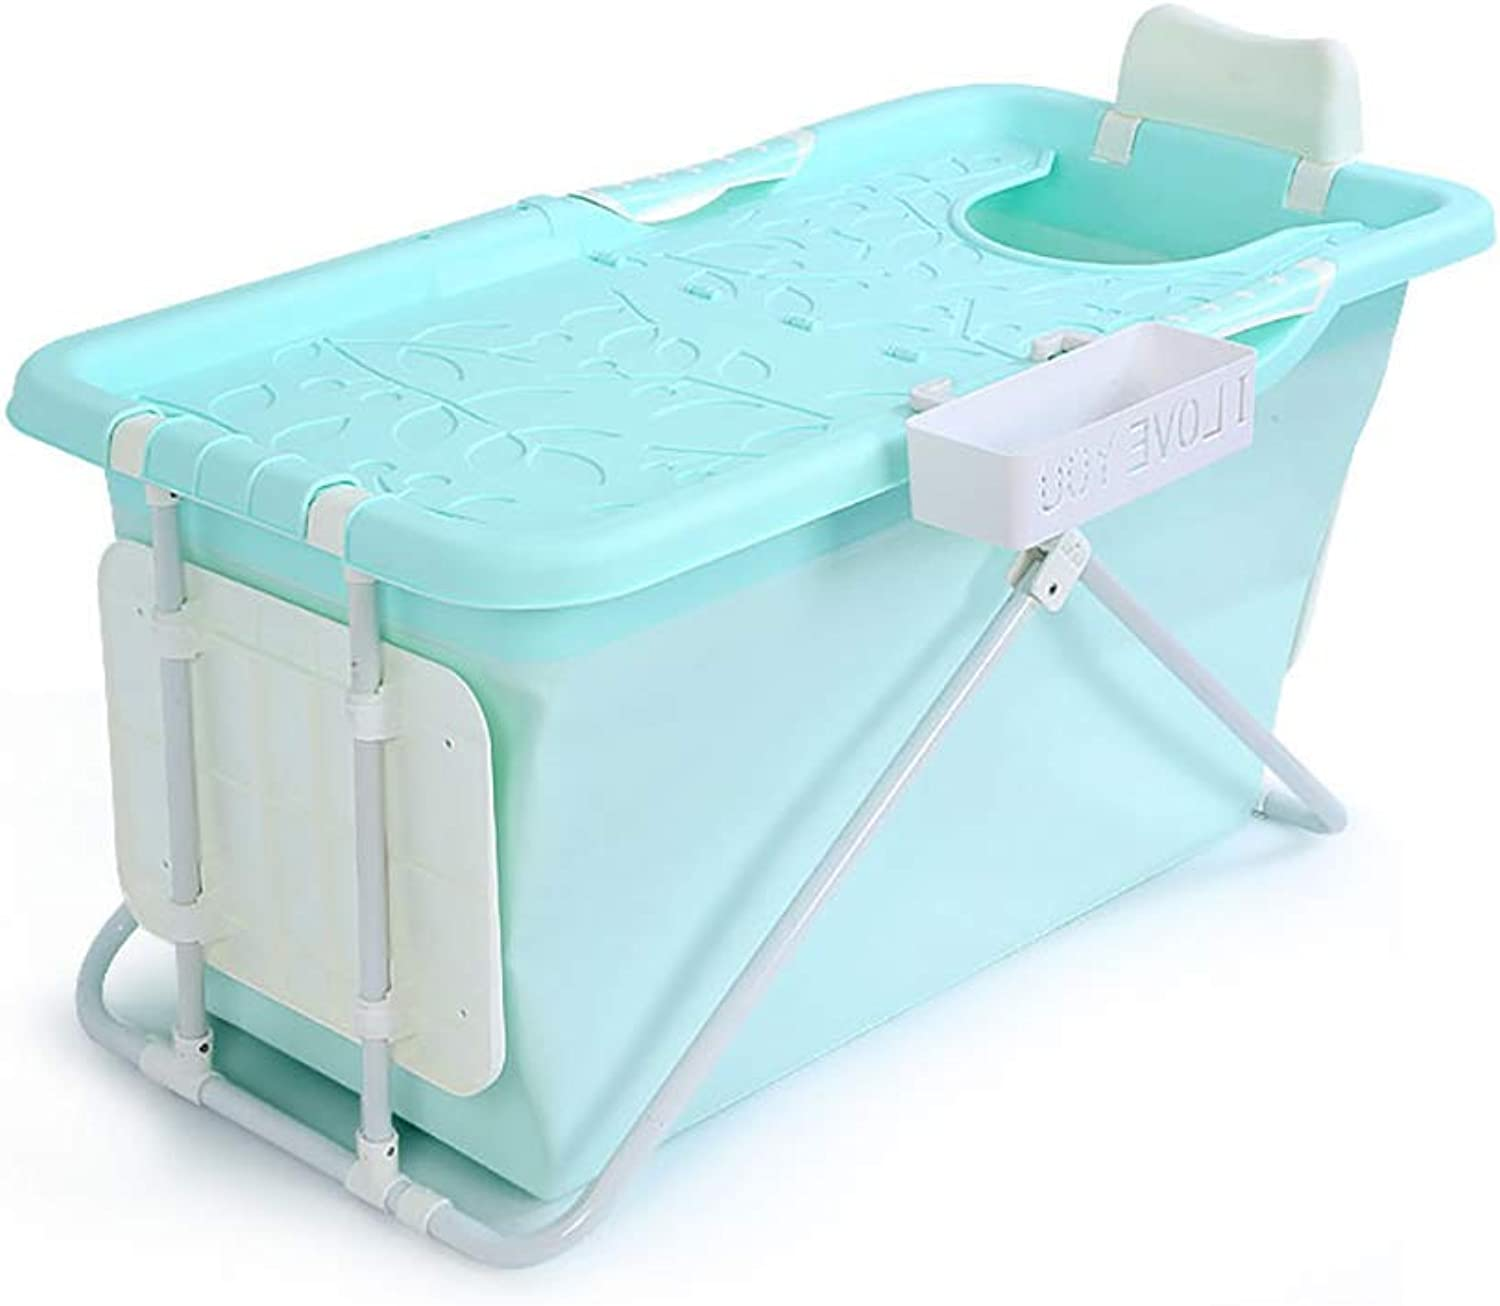 Folding Bathtub,Bath Adult, Portable Folding Baby Bathtub, 3 colors, 100  57  50 cm (color  bluee) bluee